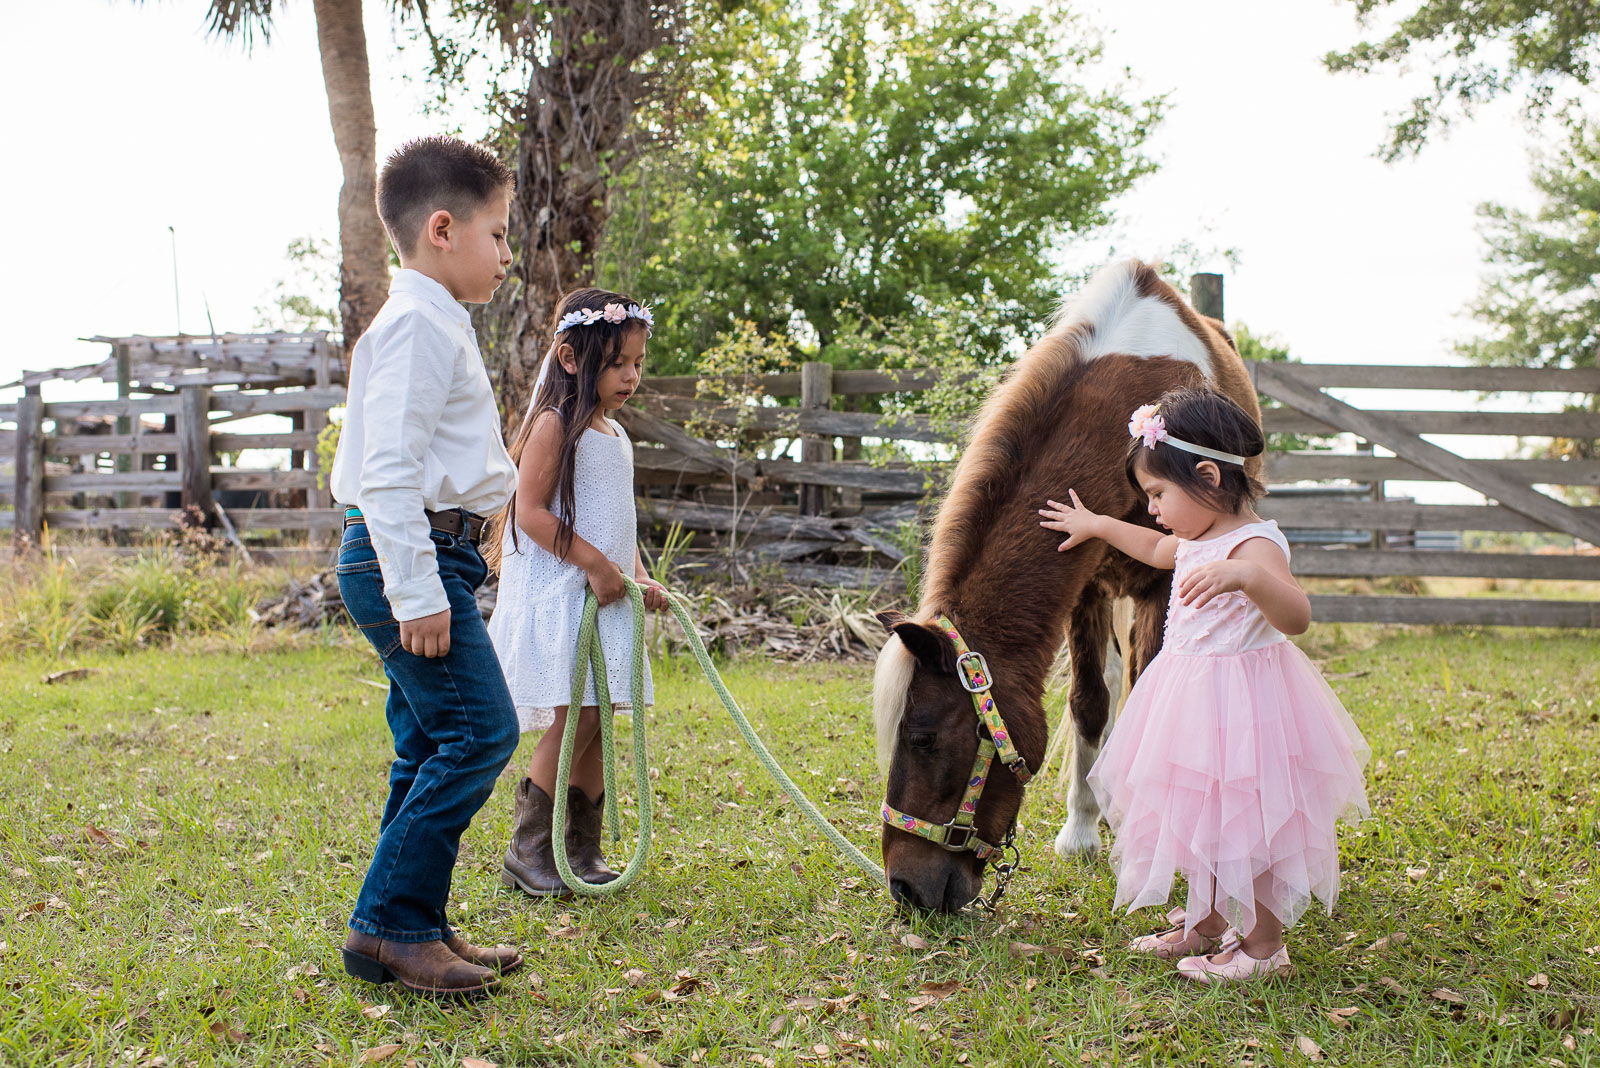 photo-sessions-children-horse-01.jpg